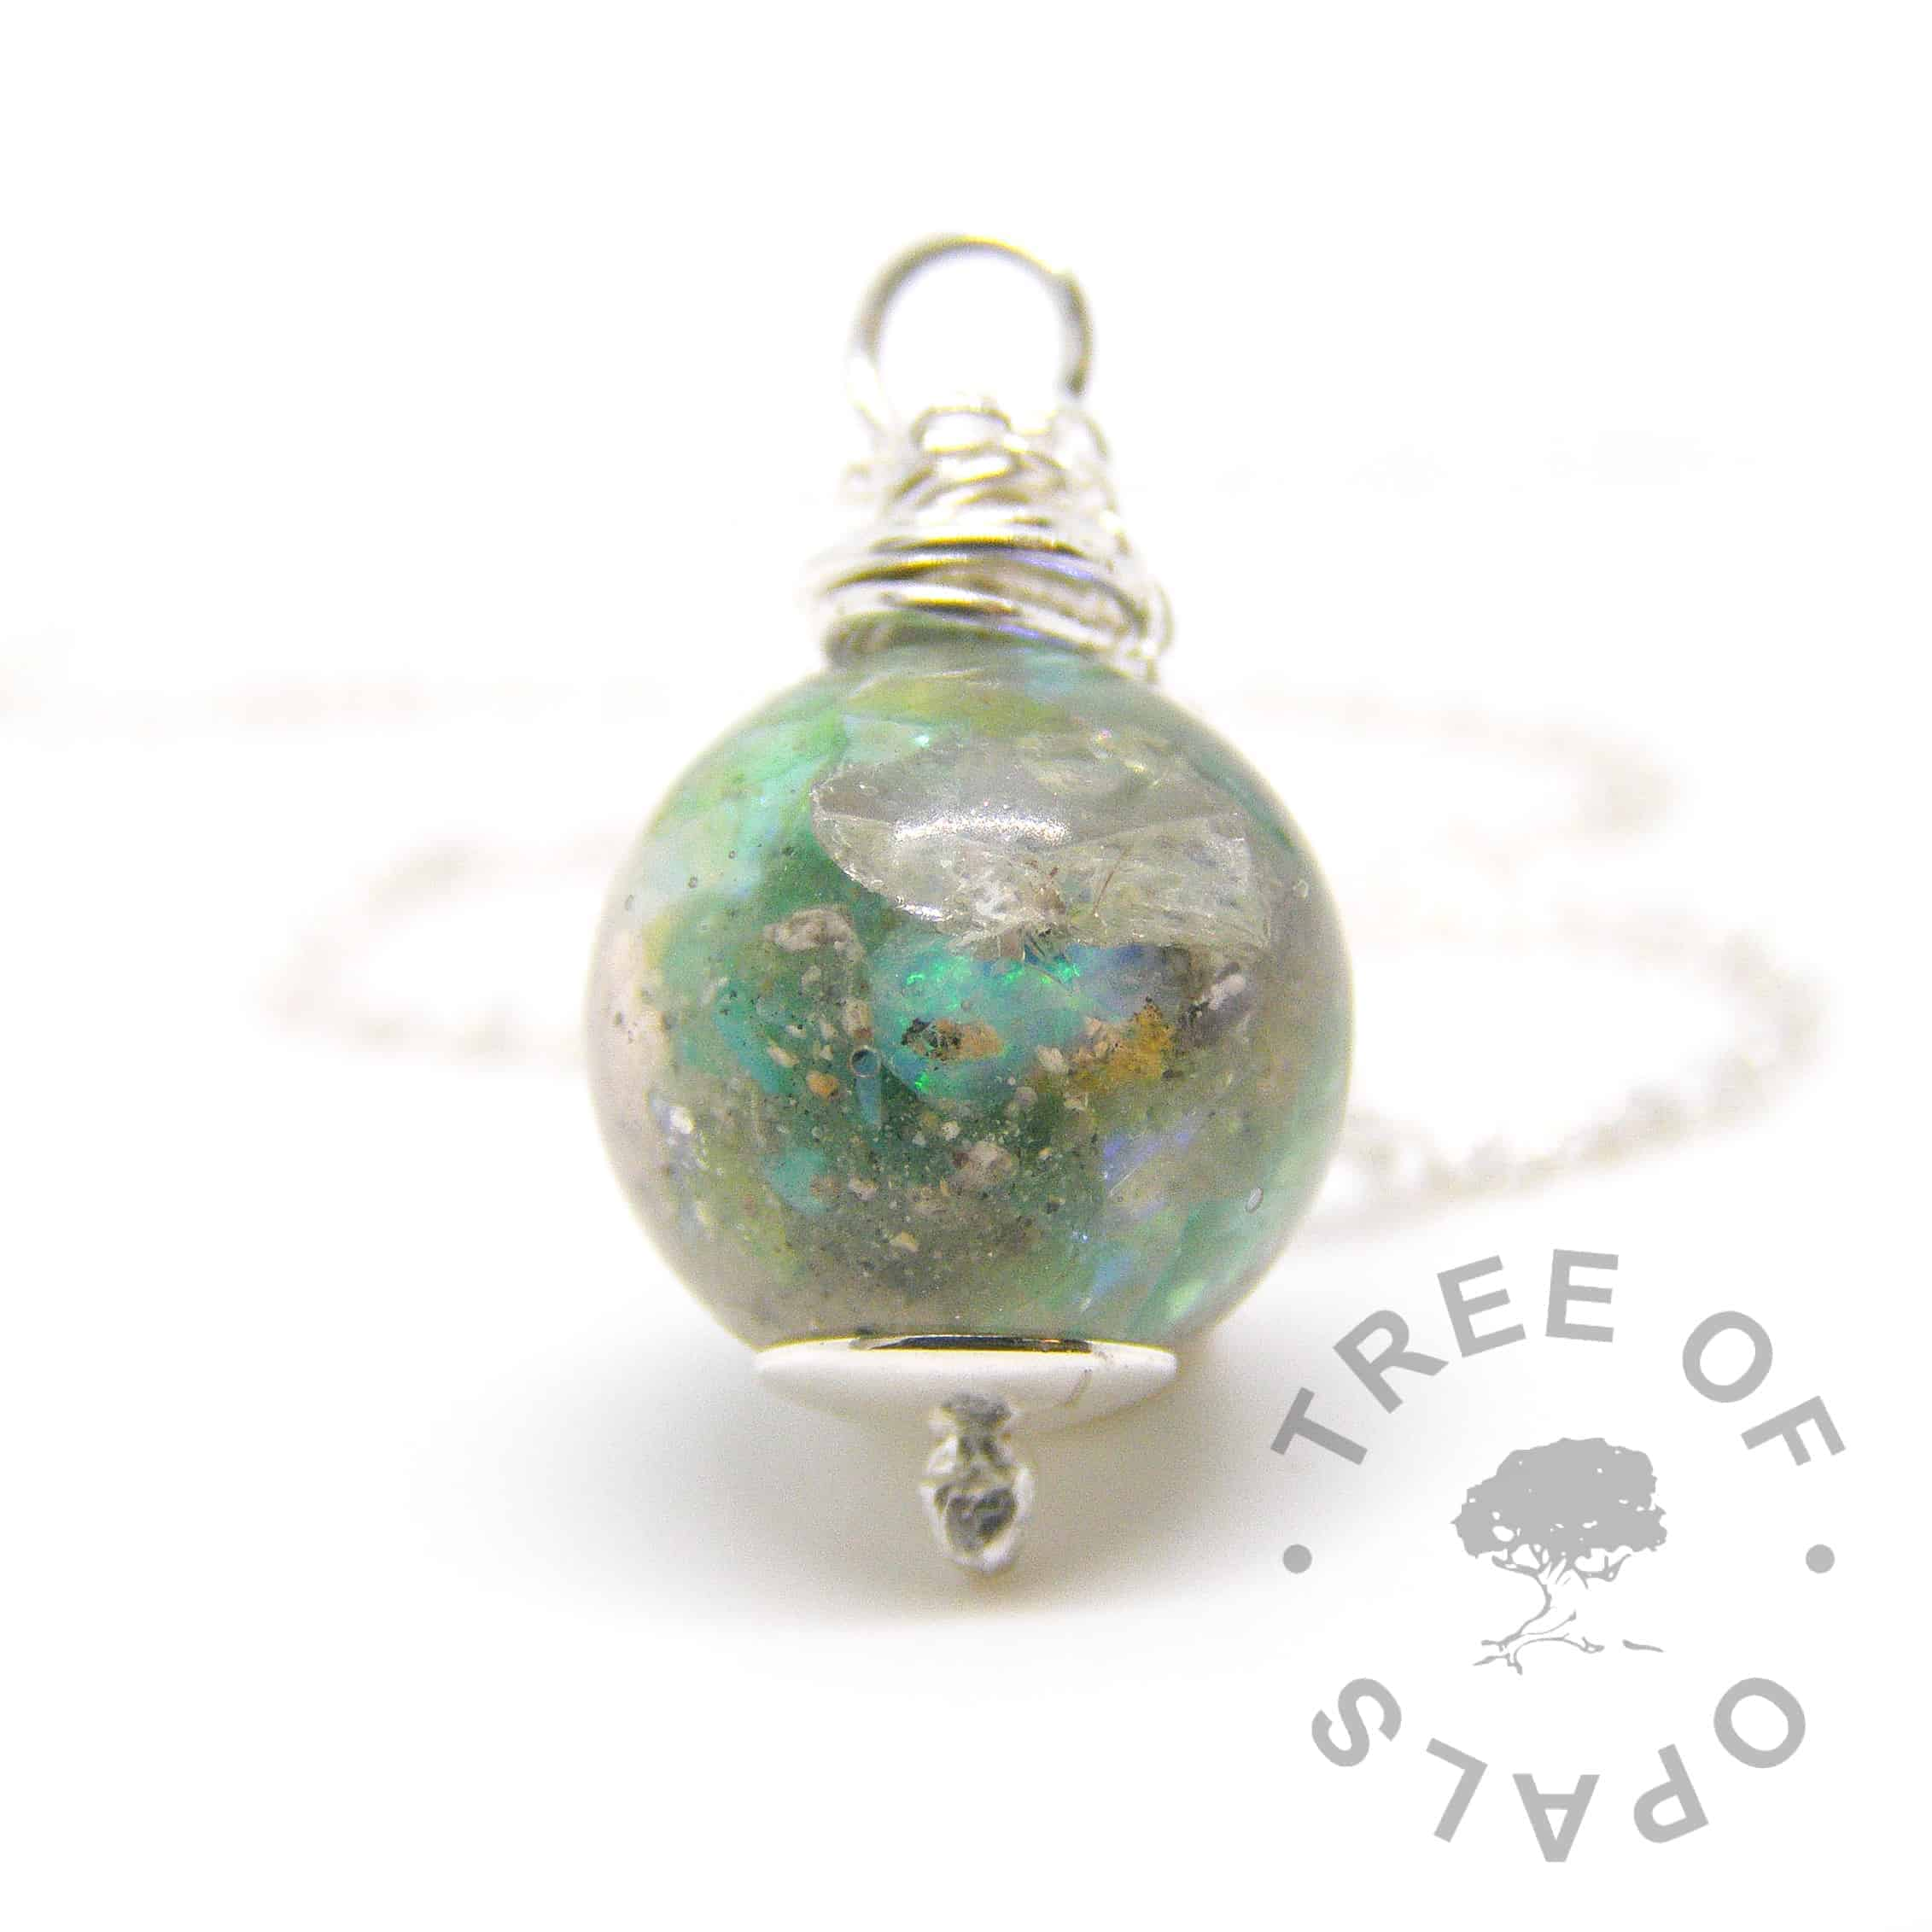 cremation ashes pearl necklace in resin, green opalescent, peridot August birthstone with a solid sterling silver Tree of Opals hand wire wrapped setting, cremation ash pearl for necklaces or charm bracelets